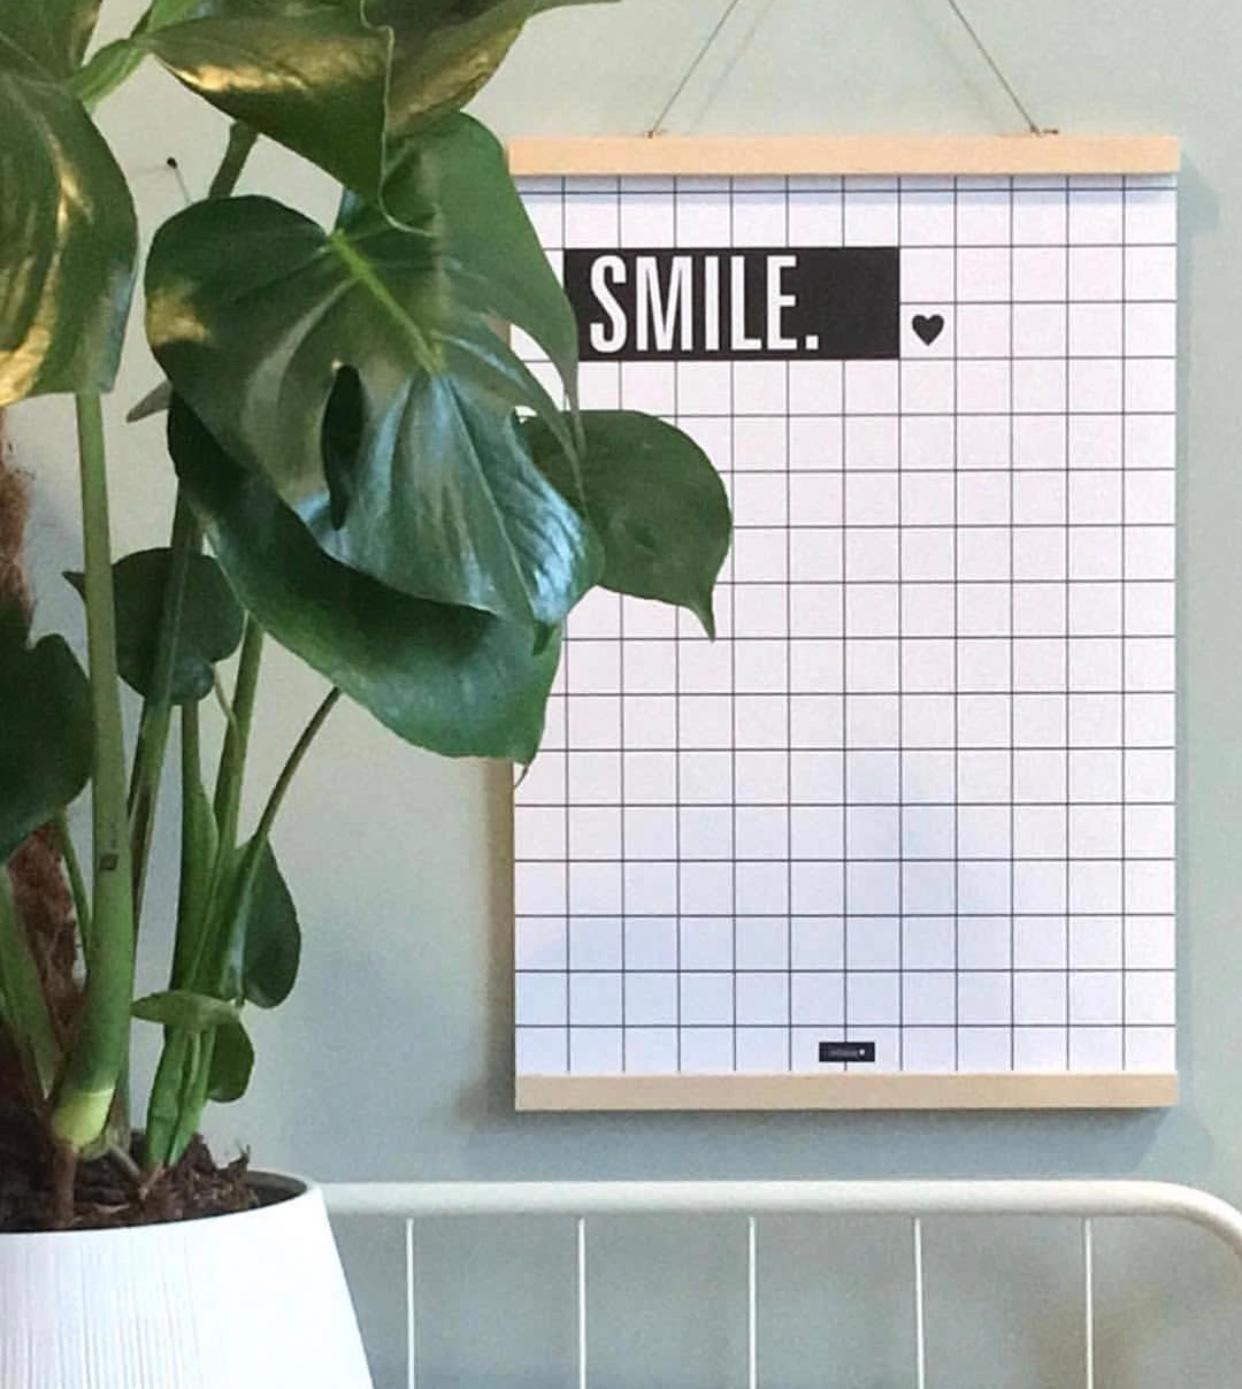 SMILE 🖤 #poster #gridpattern #homestyling #blackandwhite #lovestlyeliving